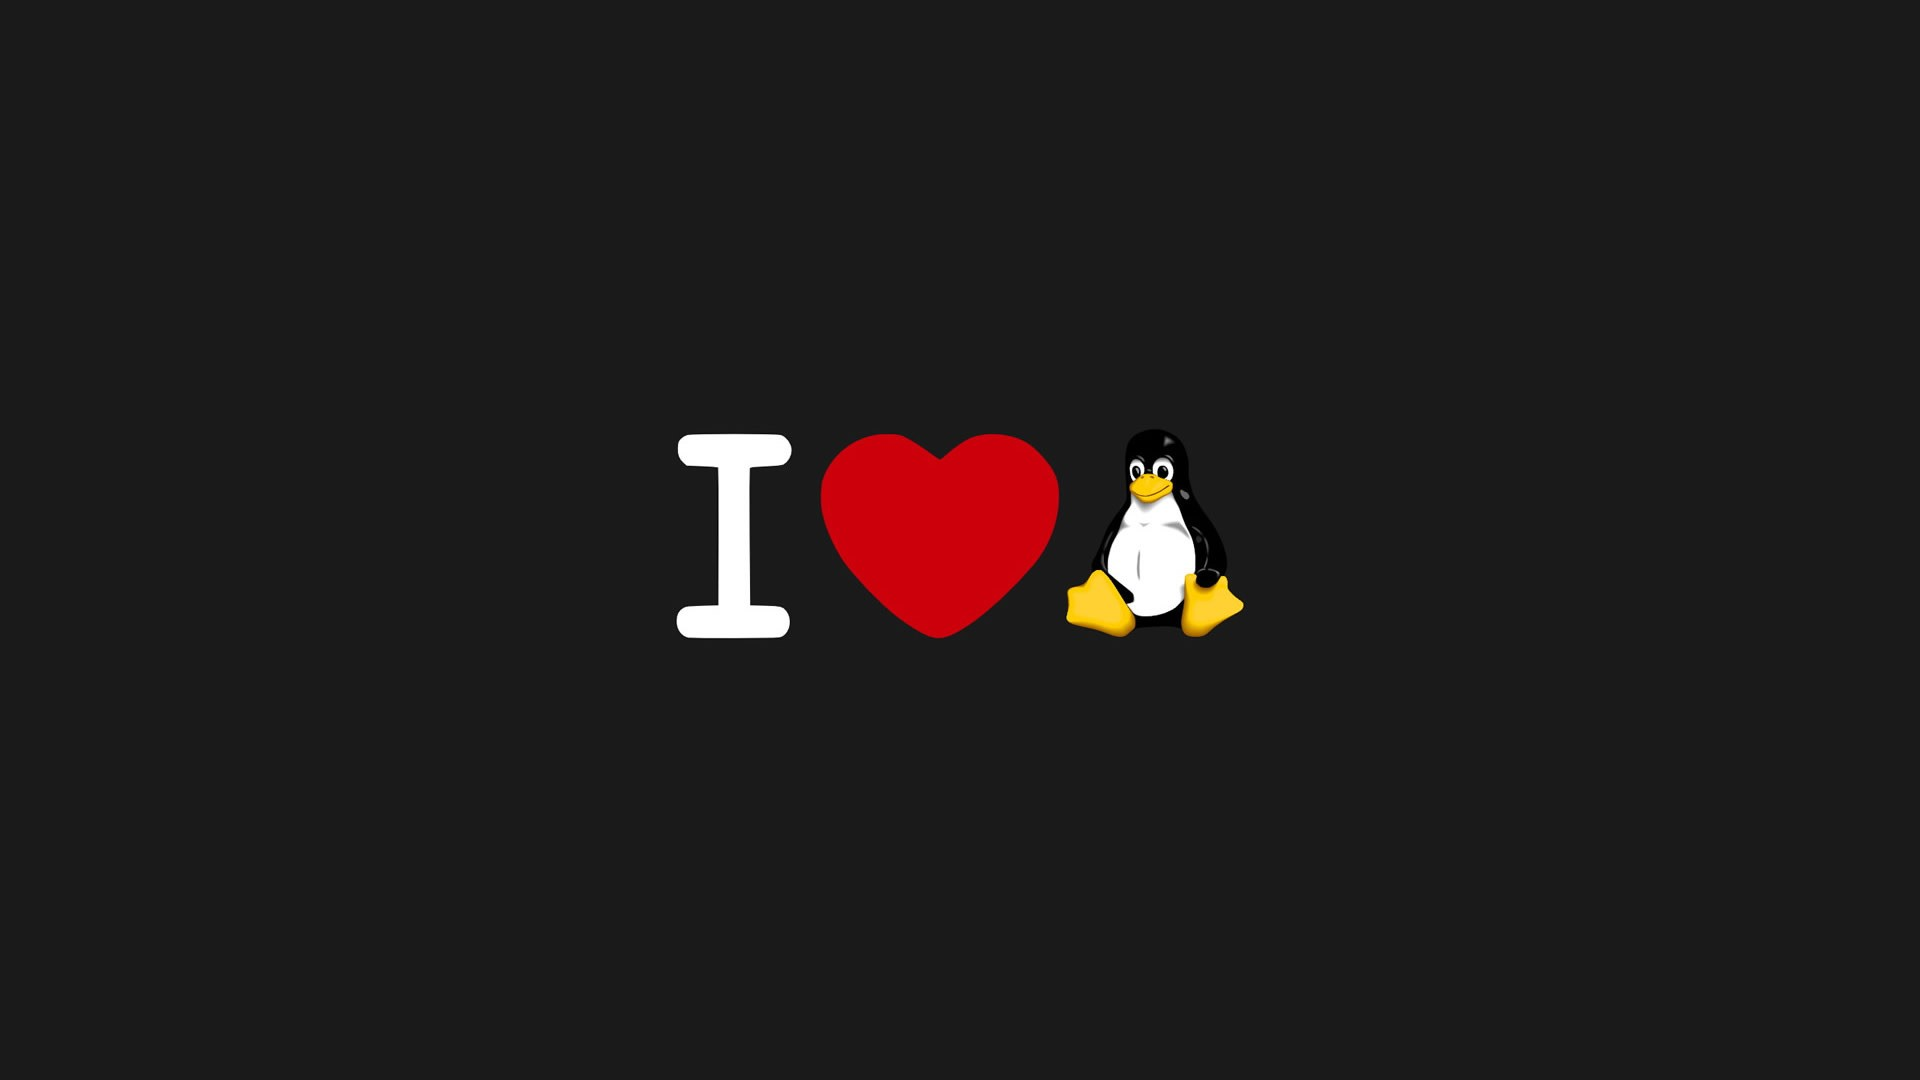 Love Wallpaper Hd Ubuntu Tweak : I Love Linux, HD computer, 4k Wallpapers, Images, Backgrounds, Photos and Pictures